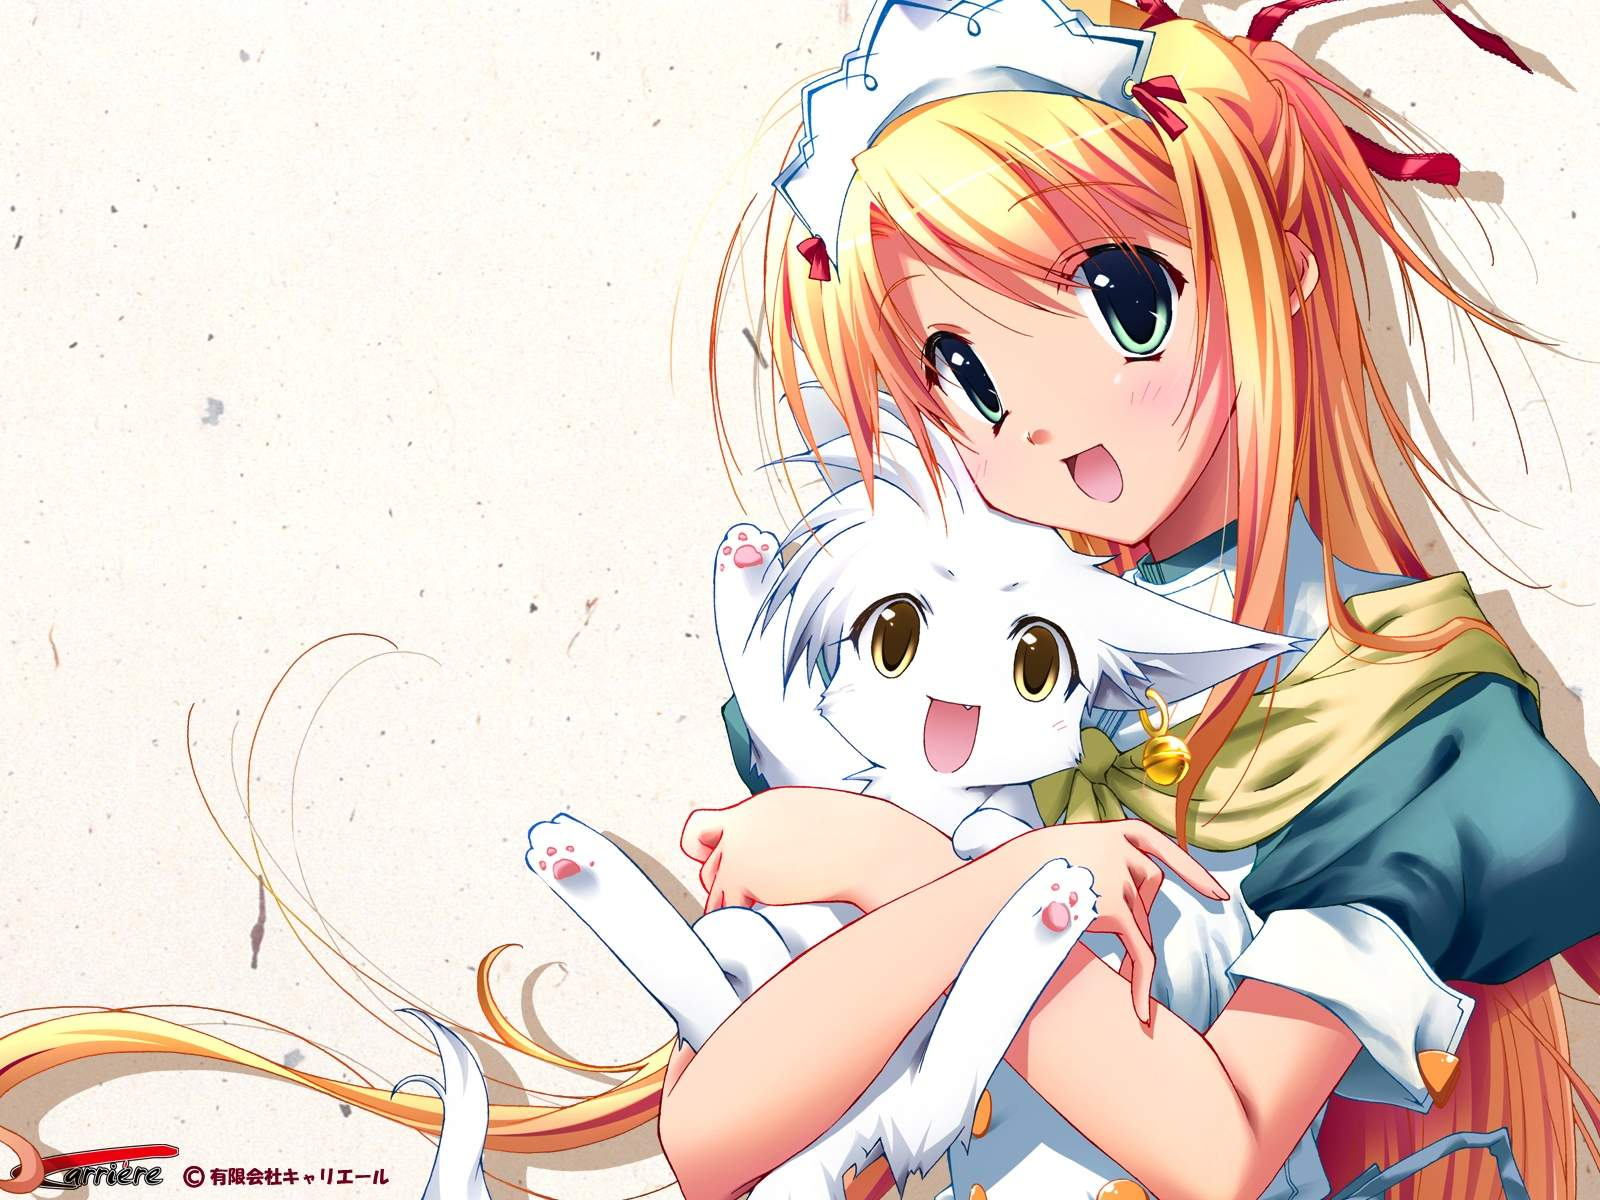 Girl with cat anime photo 24460741 fanpop - Anime kitty girl ...